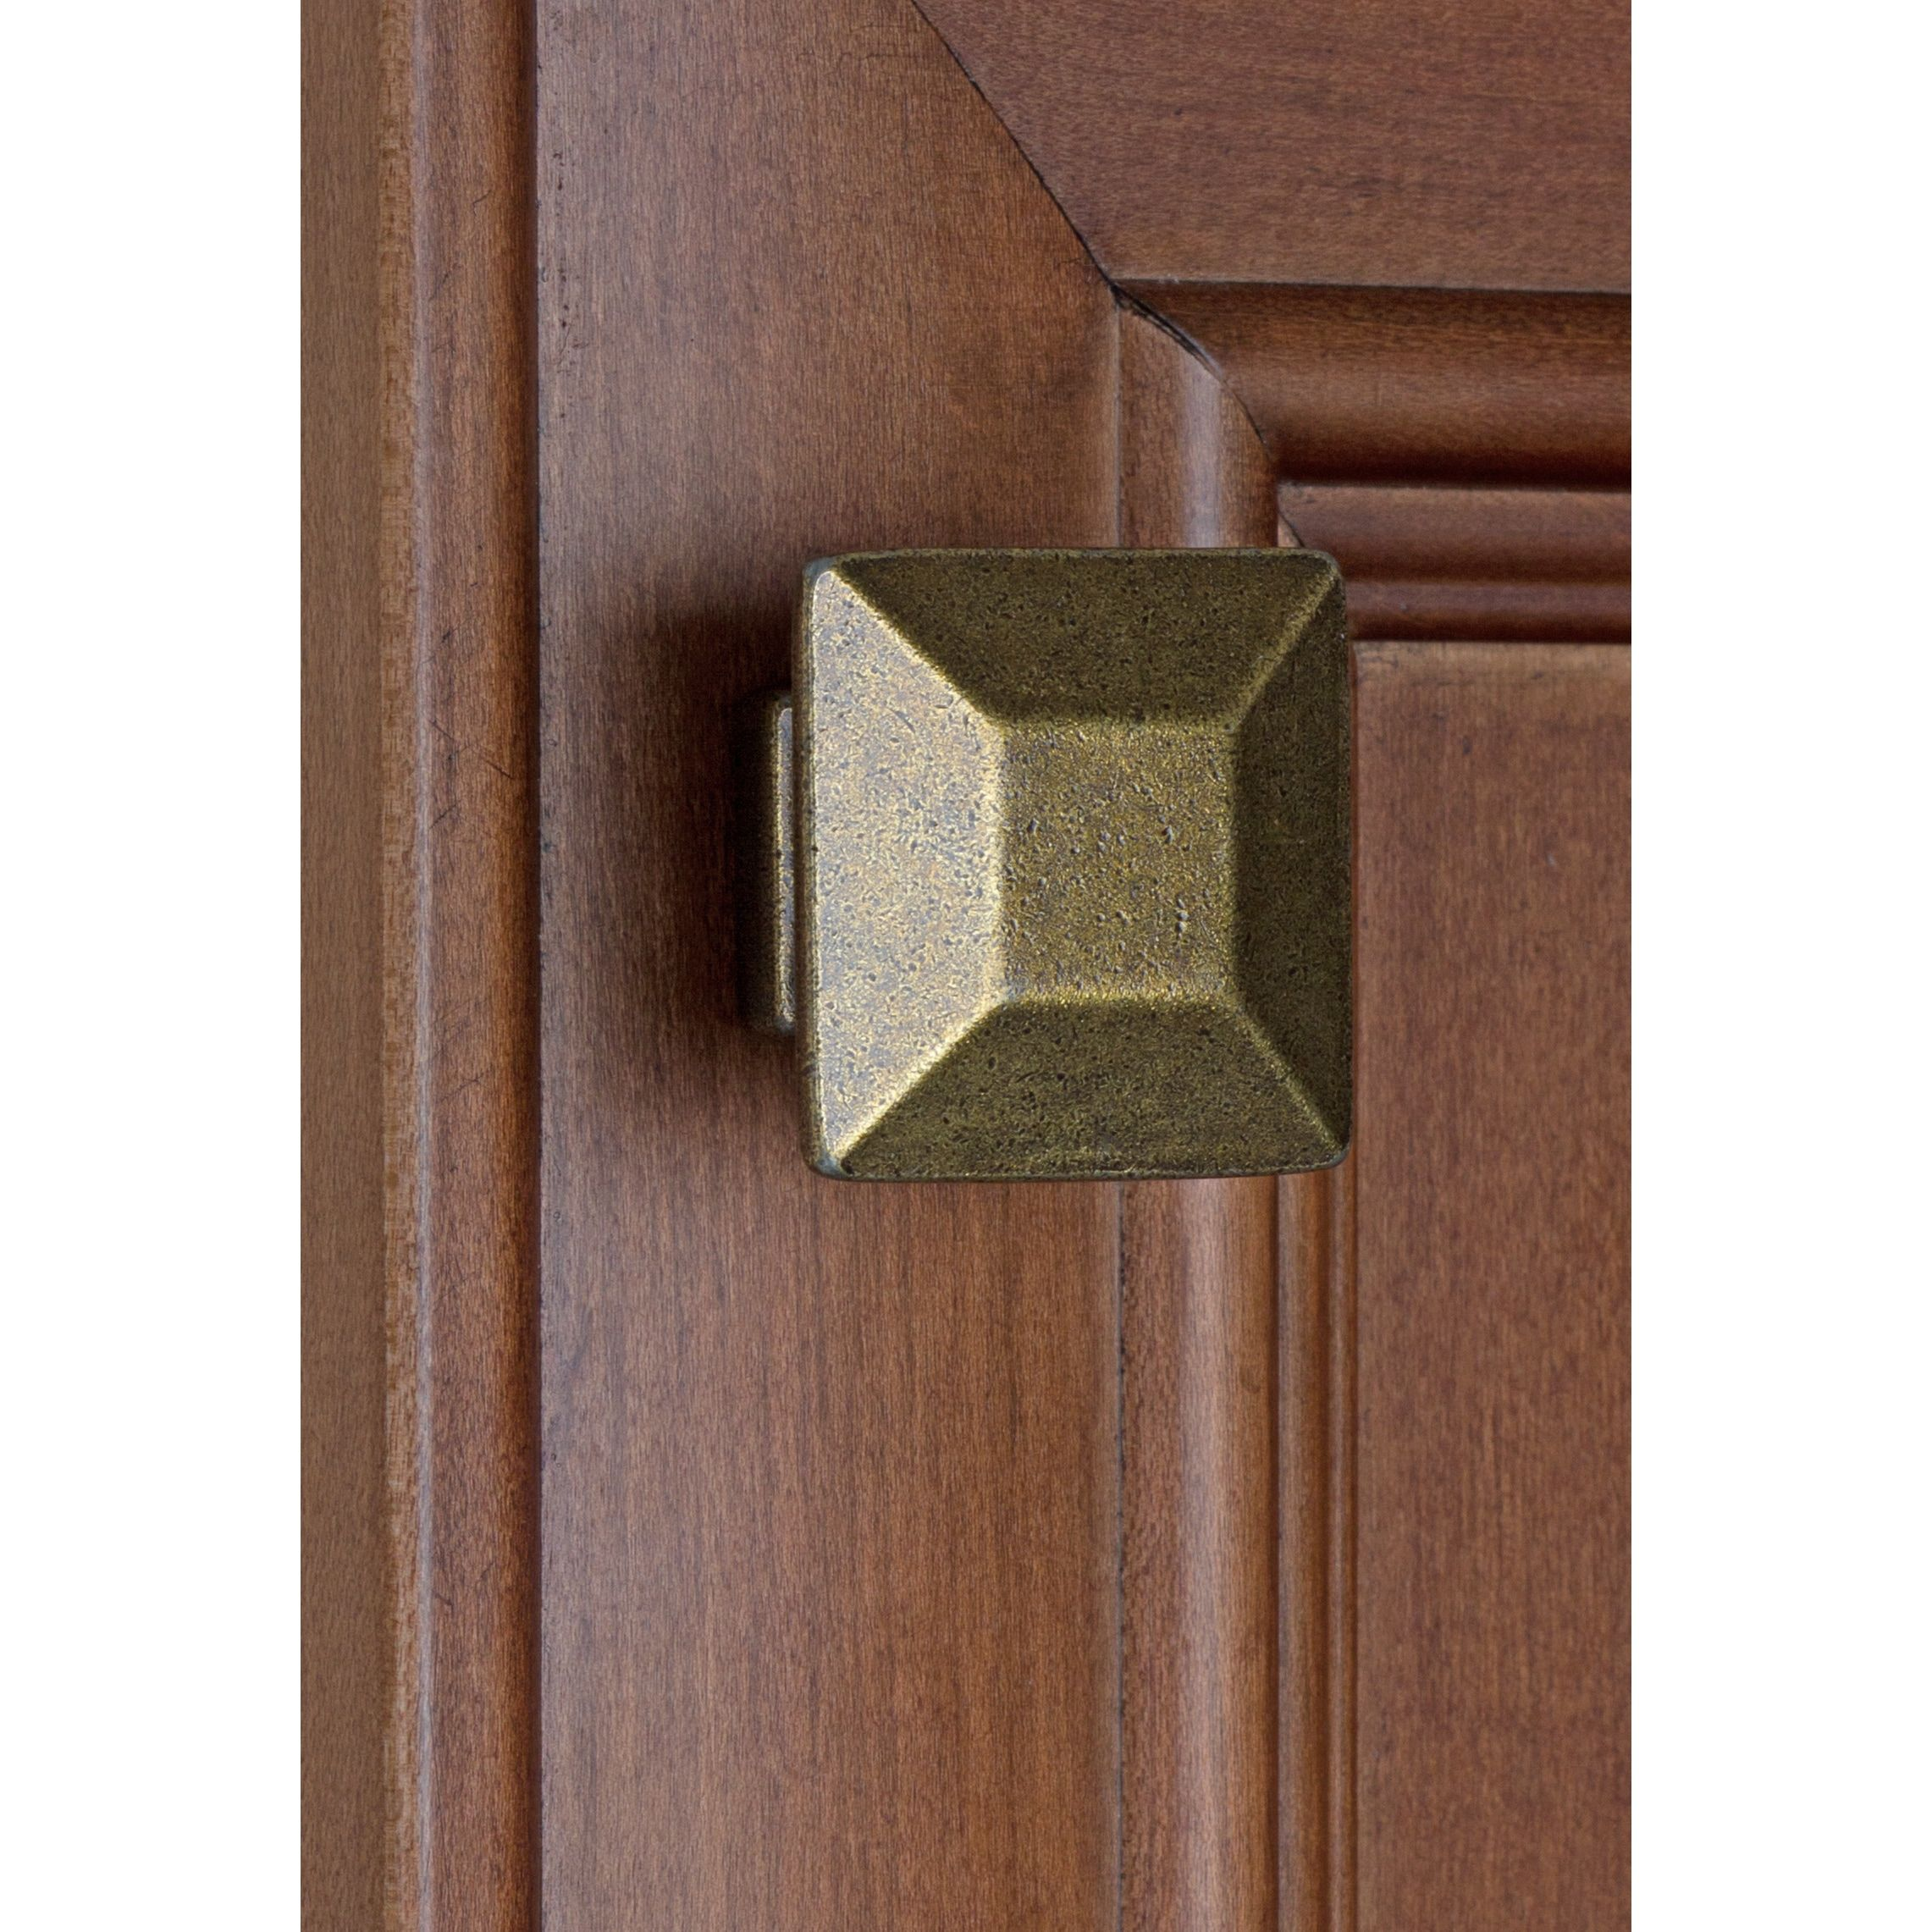 21 for 10 GlideRite 1 375 inch Antique Brass Square Cabinet Knobs